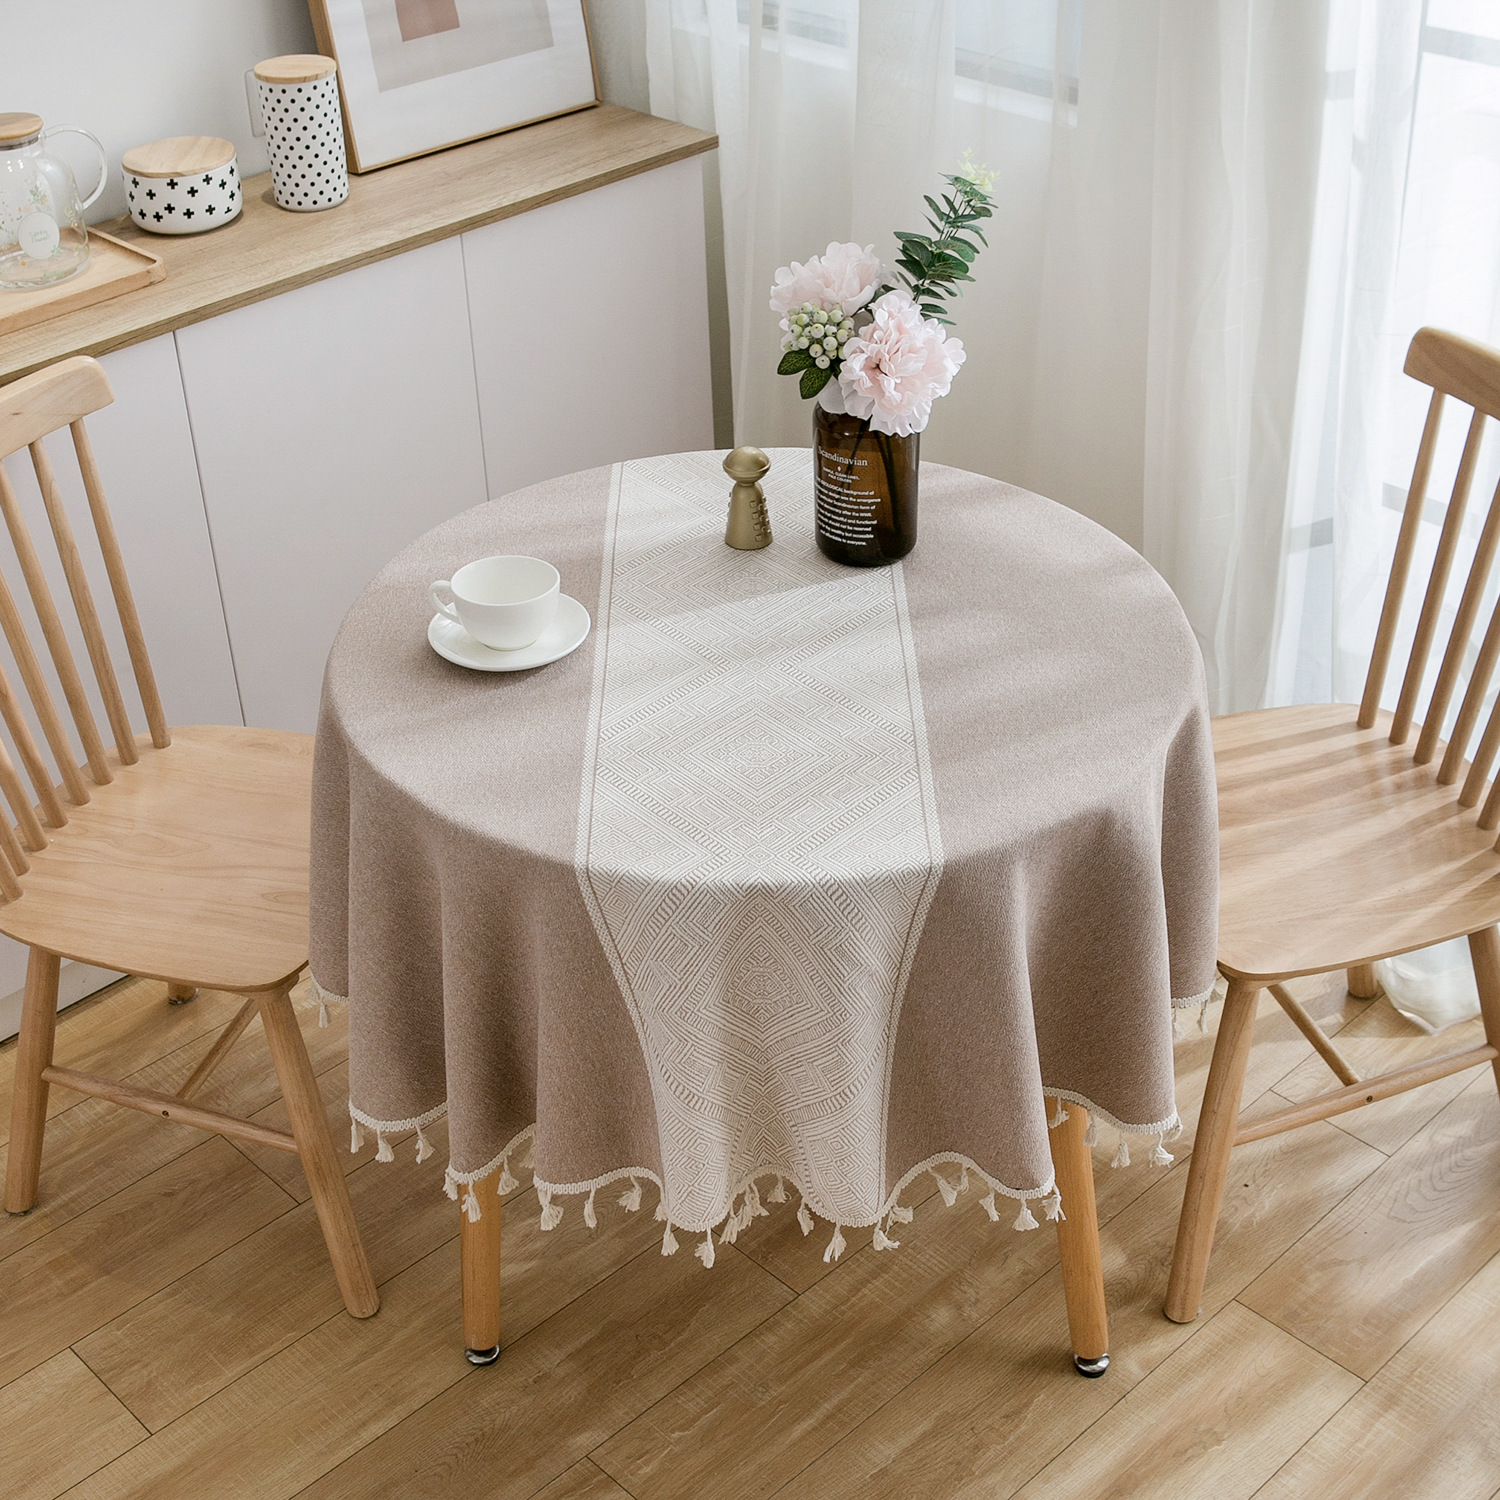 Lace Round Tablecloth Cotton Linen Tassel table cover Bohemian white table cloth for party Obrus Tafelkleed Mantel Mesa Nappe